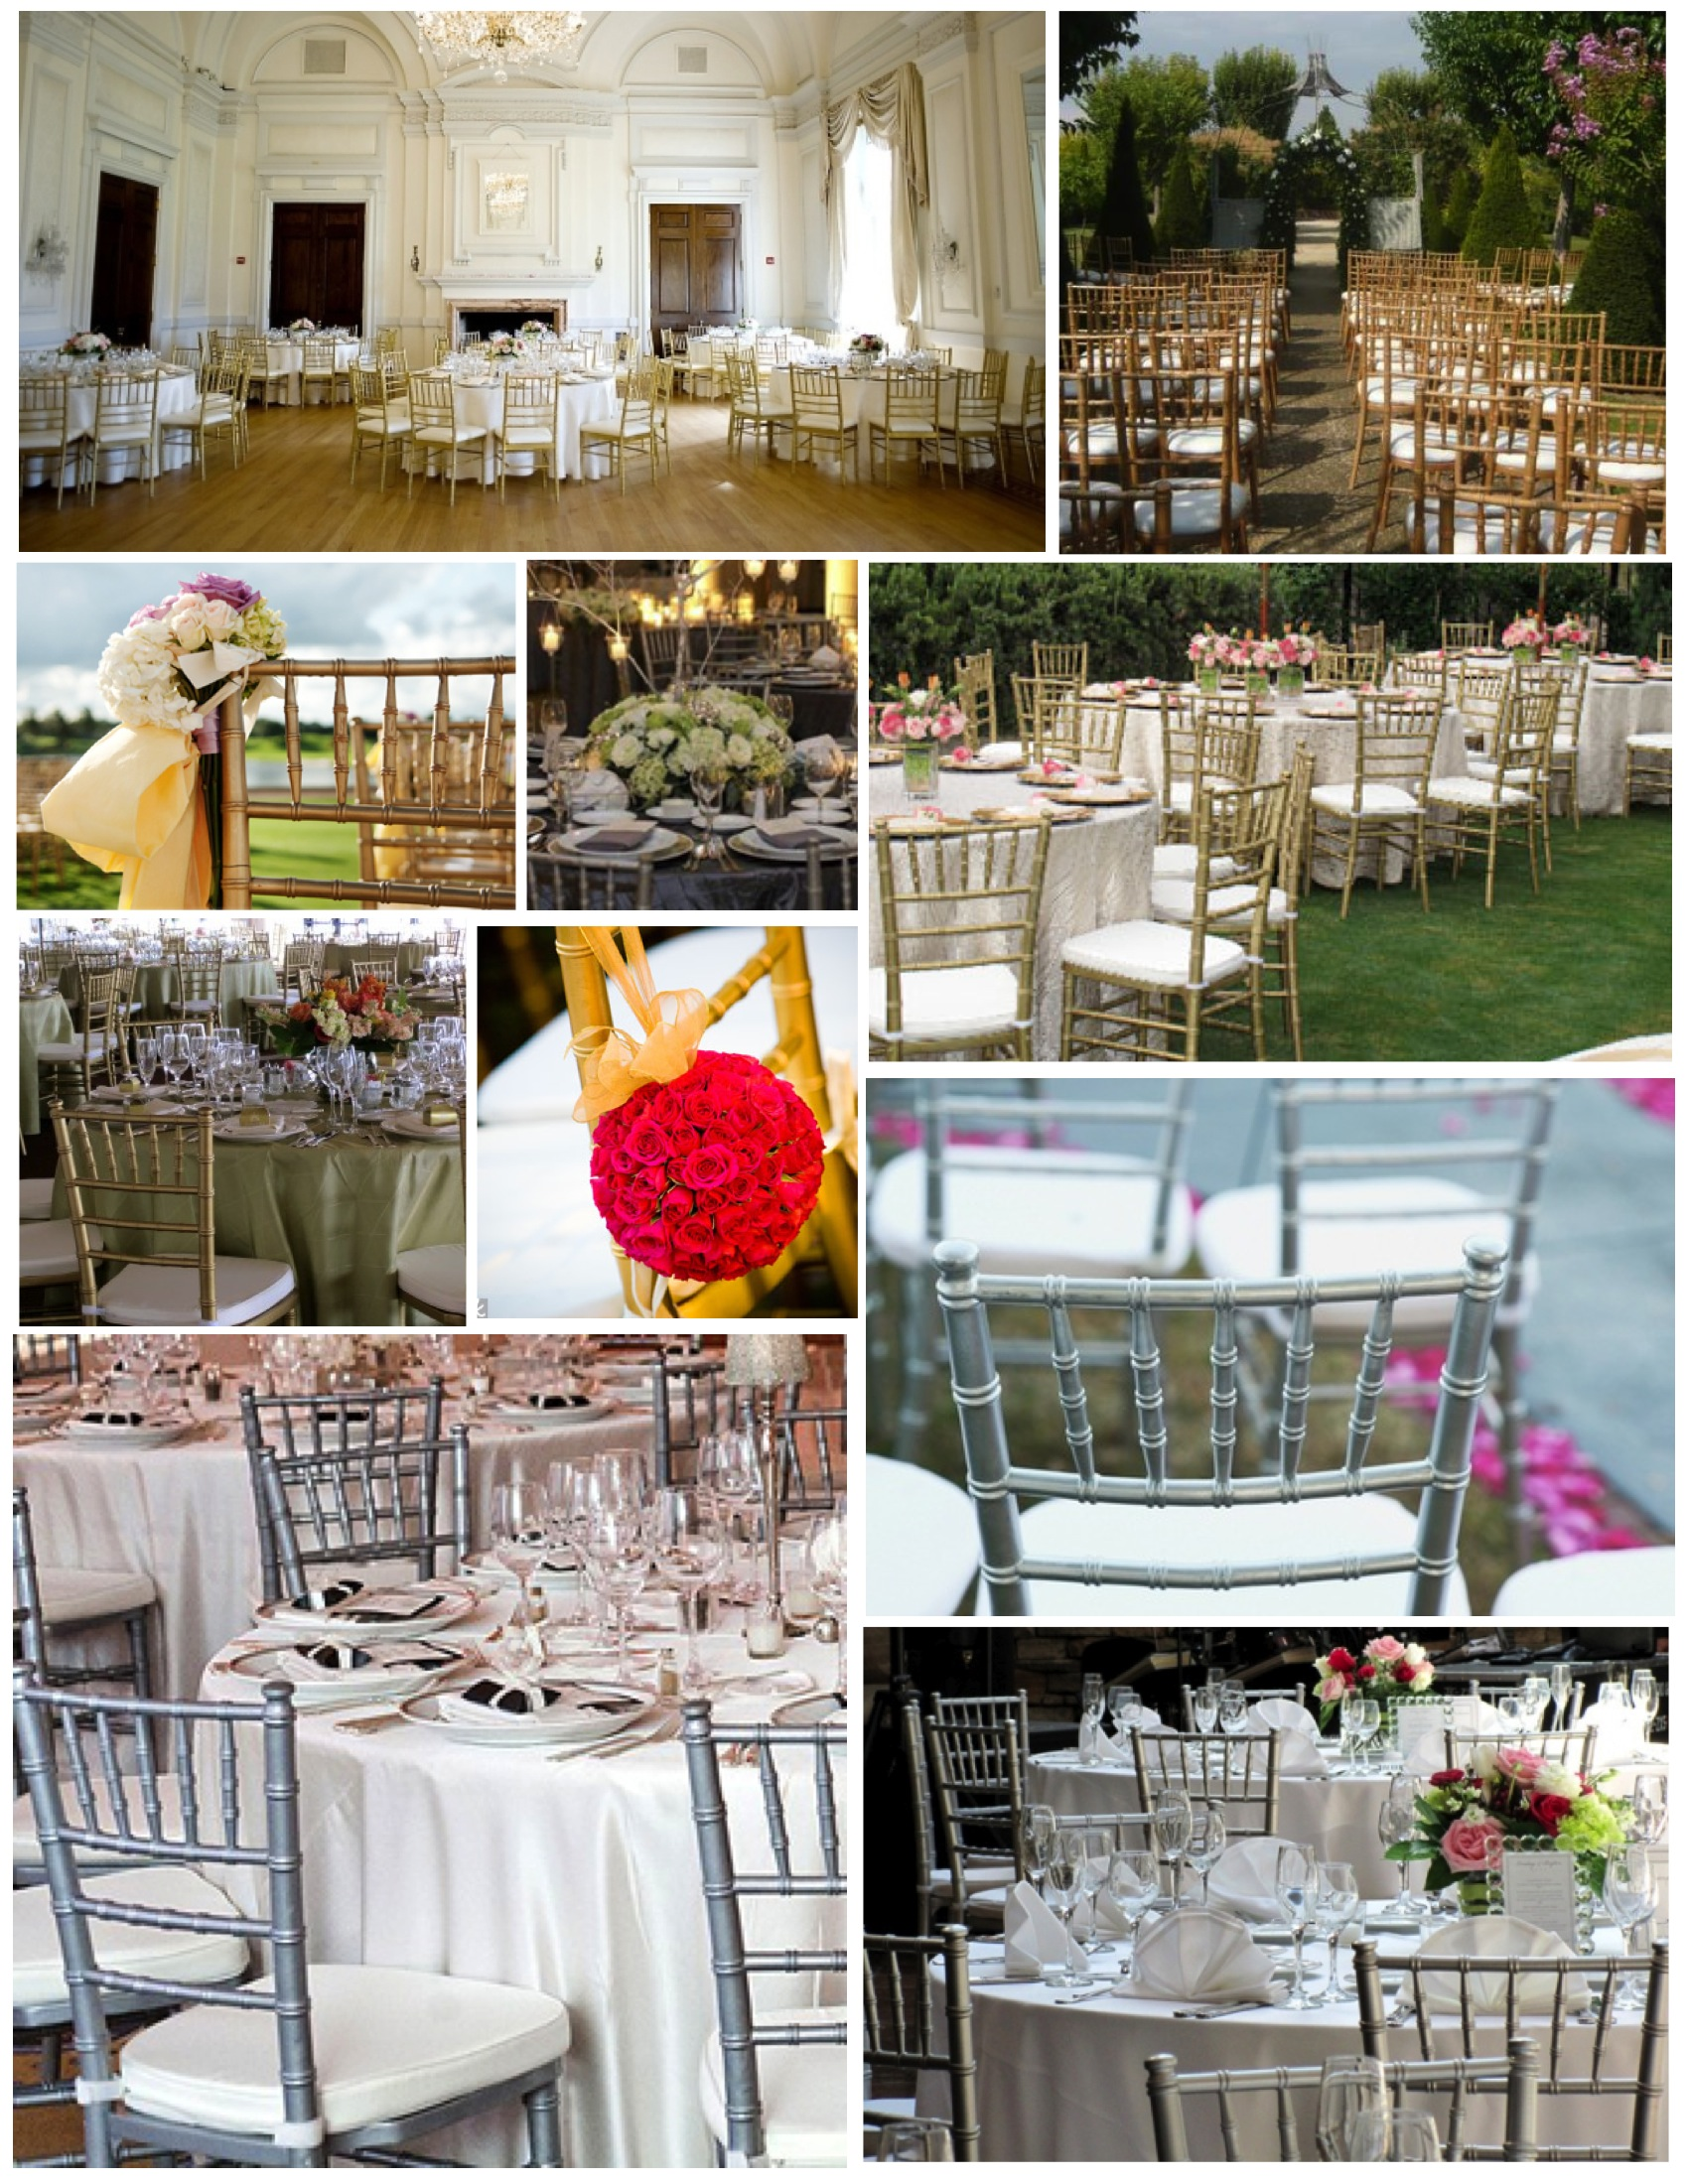 Classic Elegance Italian Origin The Chiavari Chair